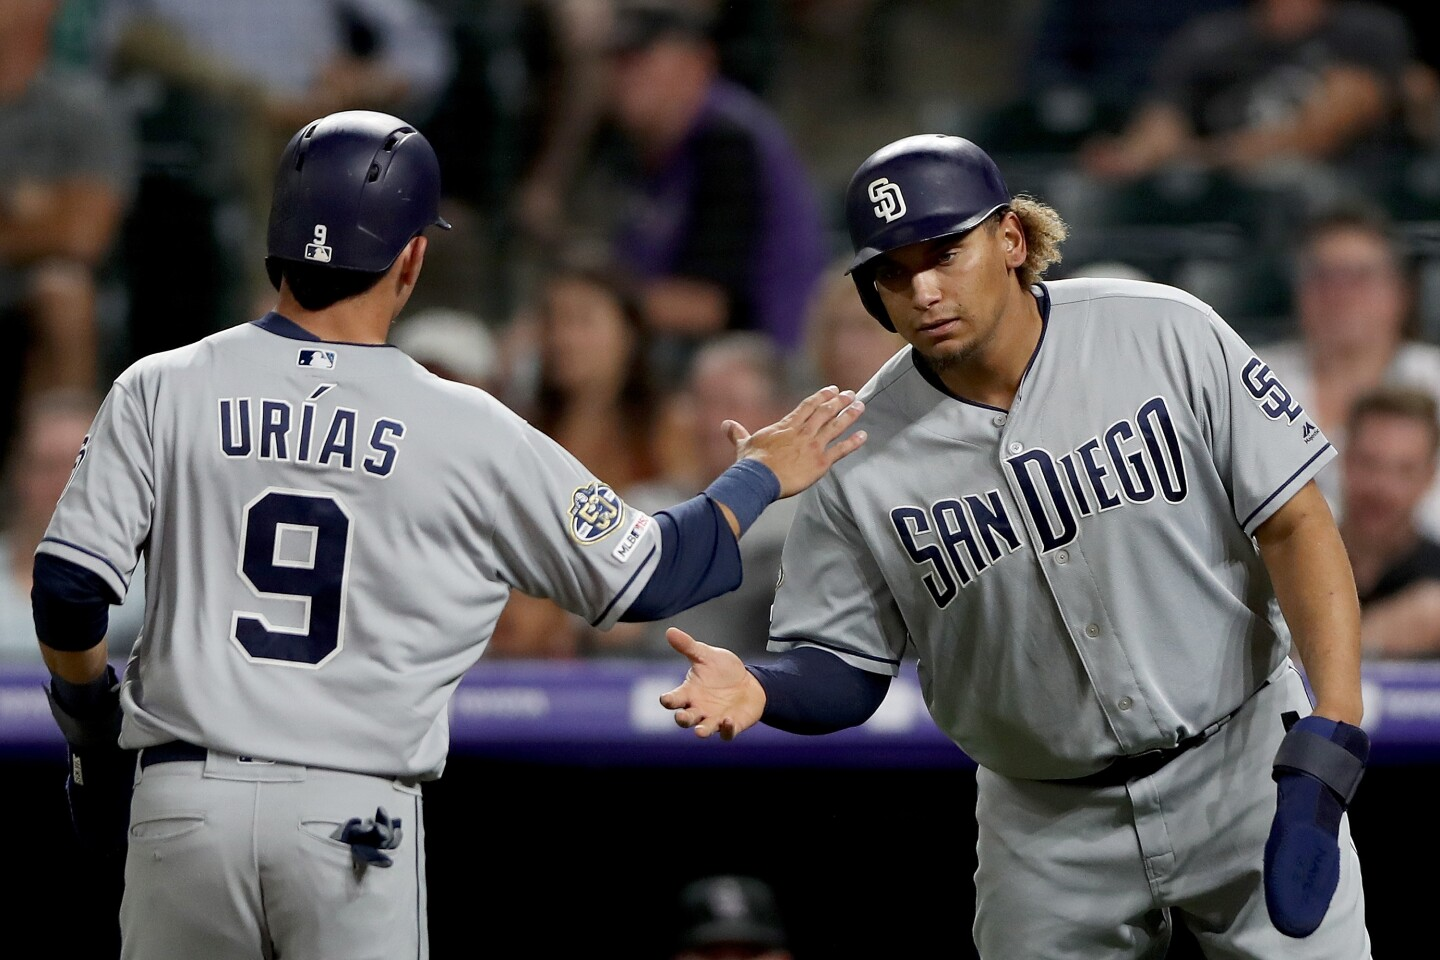 DENVER, COLORADO - SEPTEMBER 13: Luis Urias #9 of the San Diego Padres celebrates with Josh Naylor #22 after both scoring on a Ty France single in the sixth inning against the Colorado Rockies at Coors Field on September 13, 2019 in Denver, Colorado. (Photo by Matthew Stockman/Getty Images) ** OUTS - ELSENT, FPG, CM - OUTS * NM, PH, VA if sourced by CT, LA or MoD **